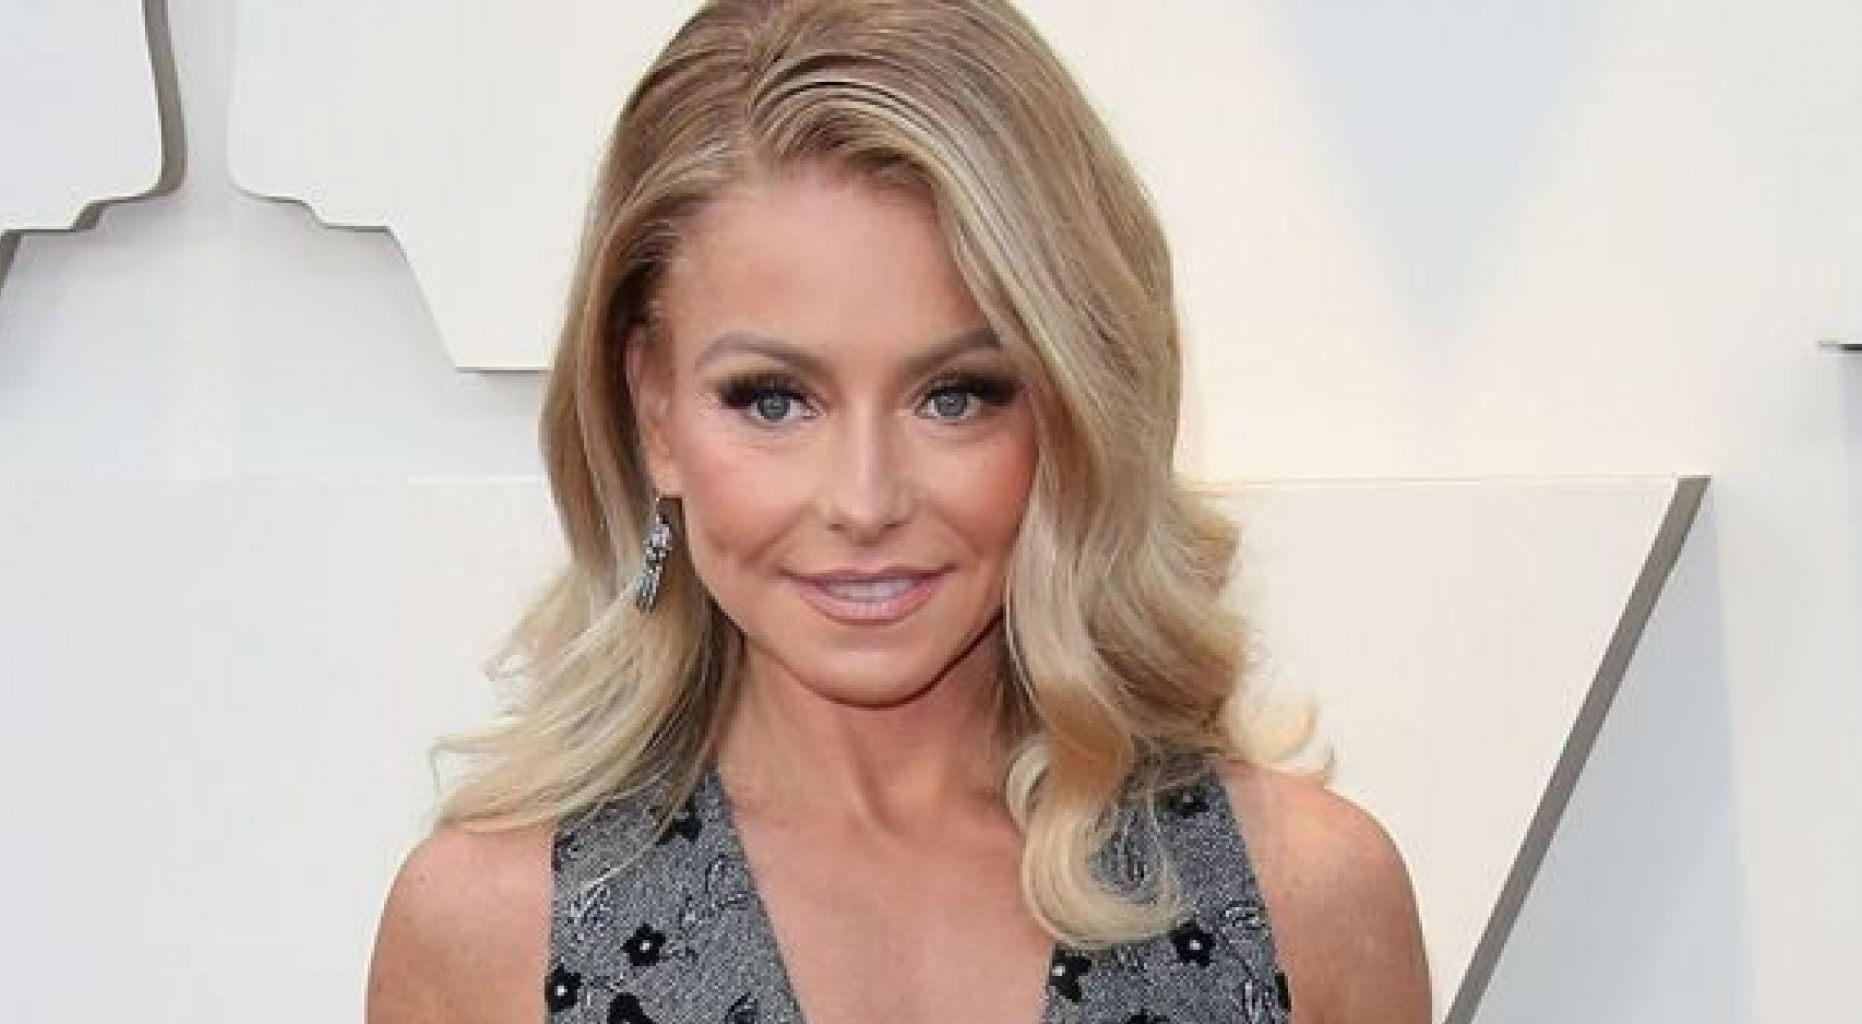 Kelly Ripa Advises Fans Not To DIY Their Haircuts While In Quarantine - 'I Cut My Bangs Once And Never Got Over It!'